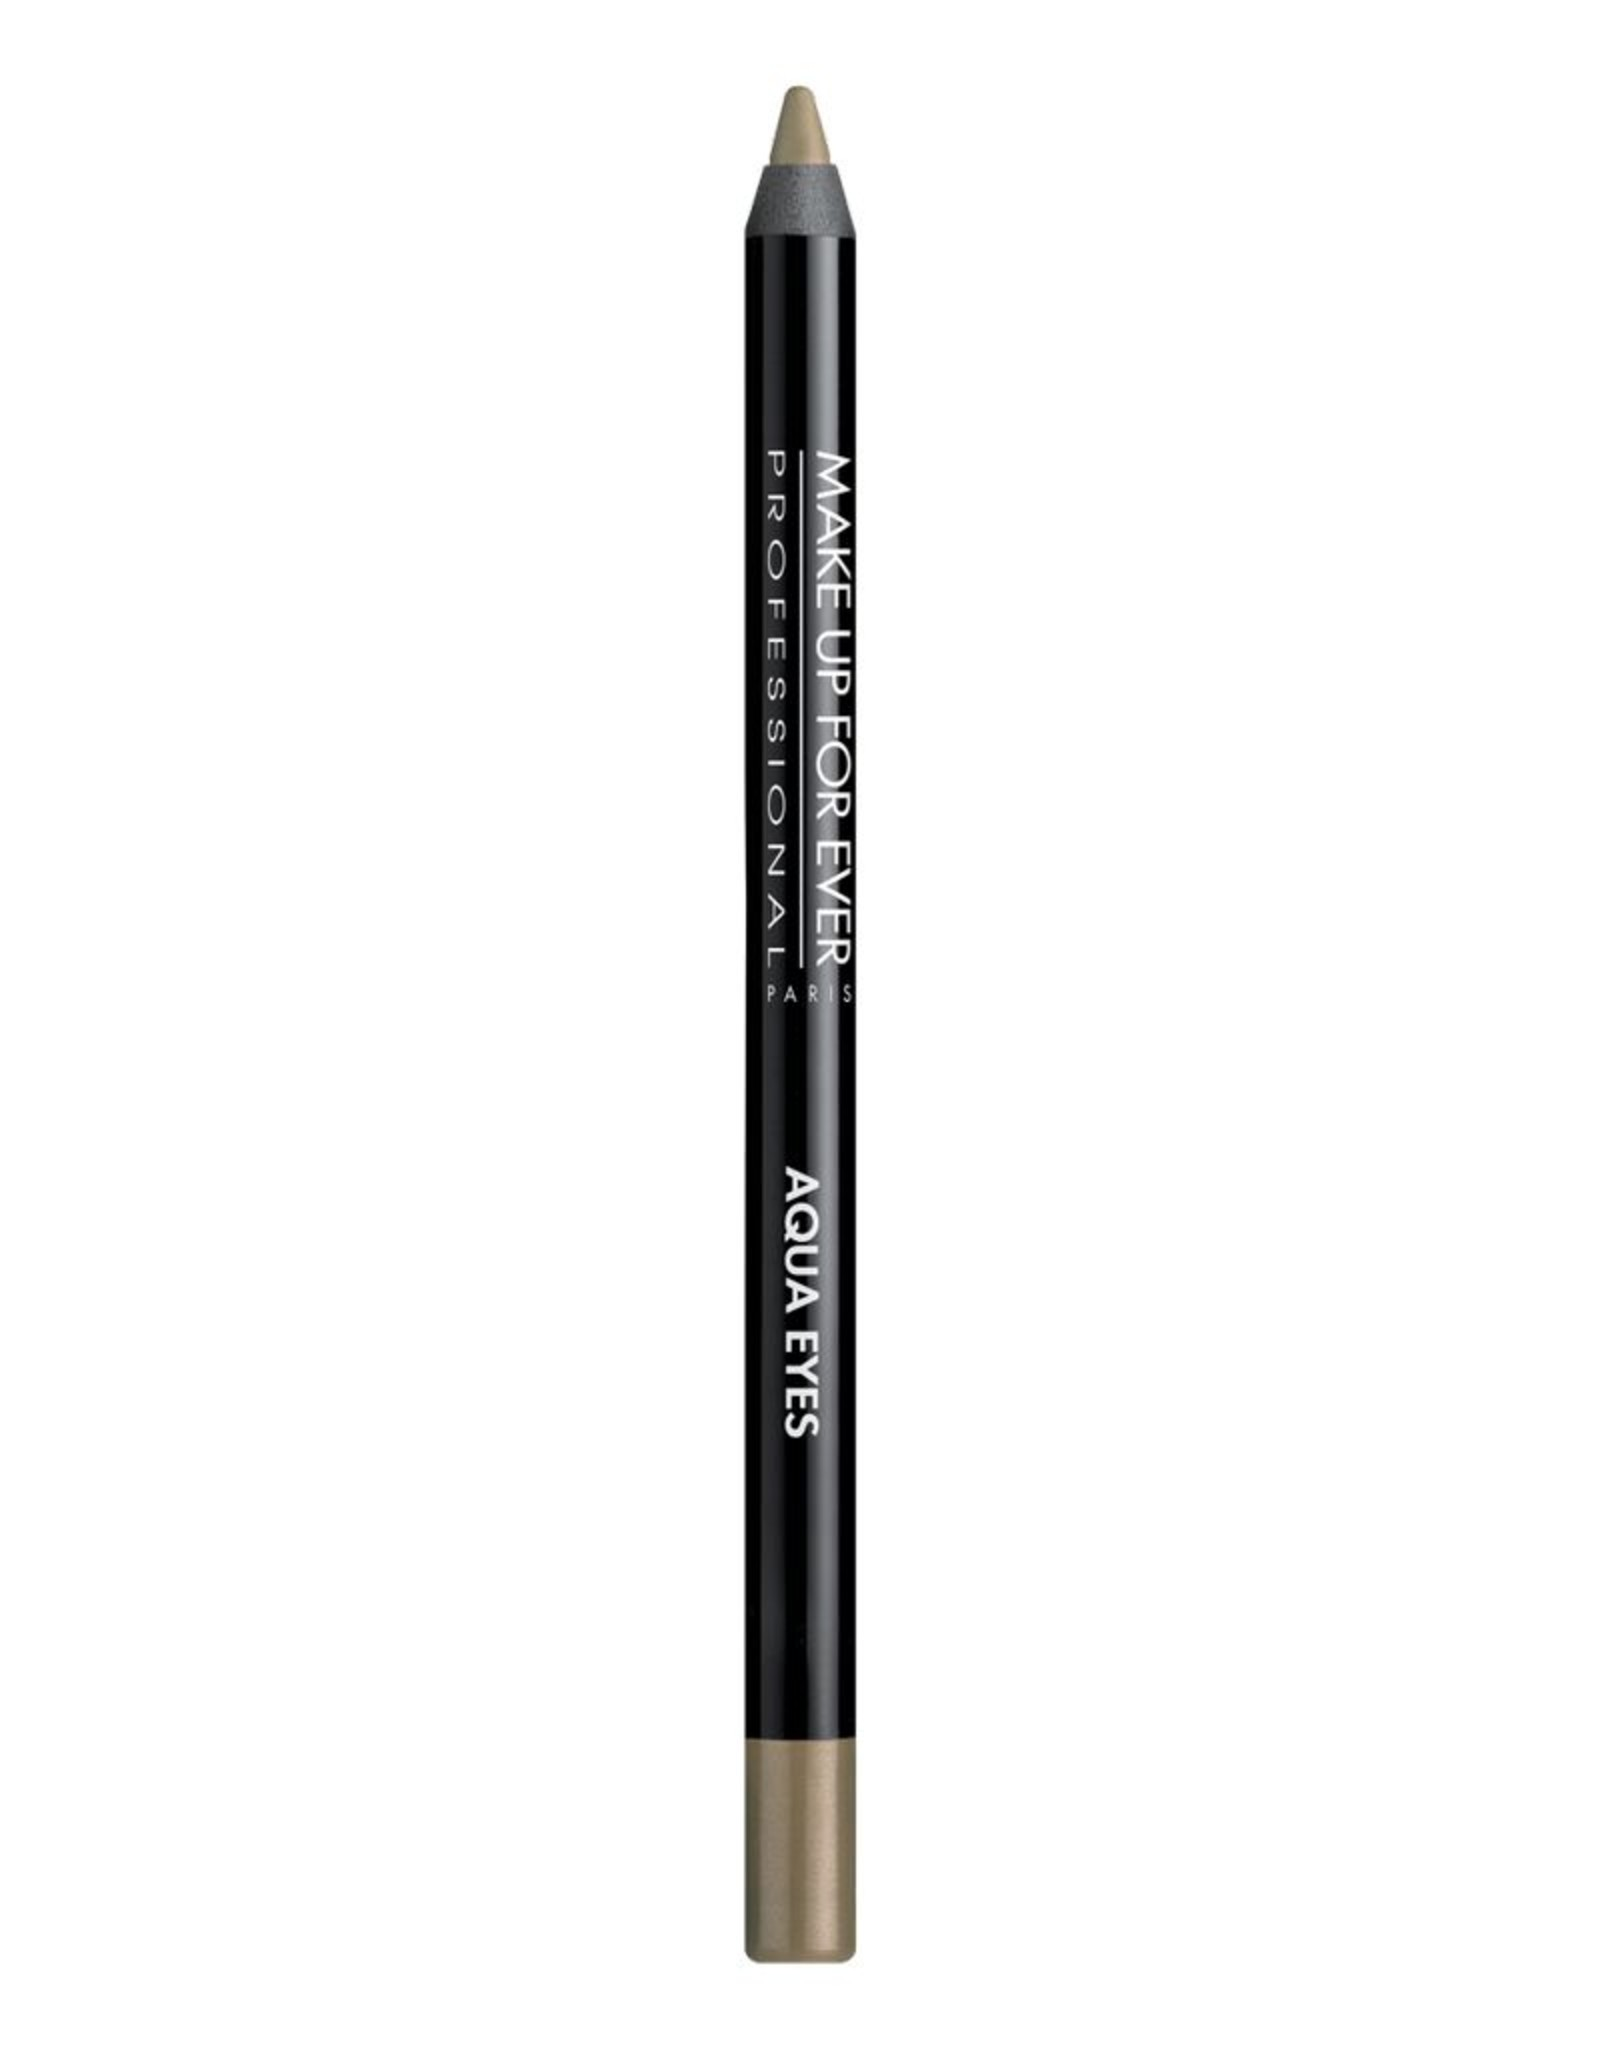 MUFE AQUA EYES CRAYON YEUX WTP NACRE 1,2g 19L taupe clair  /  light brown